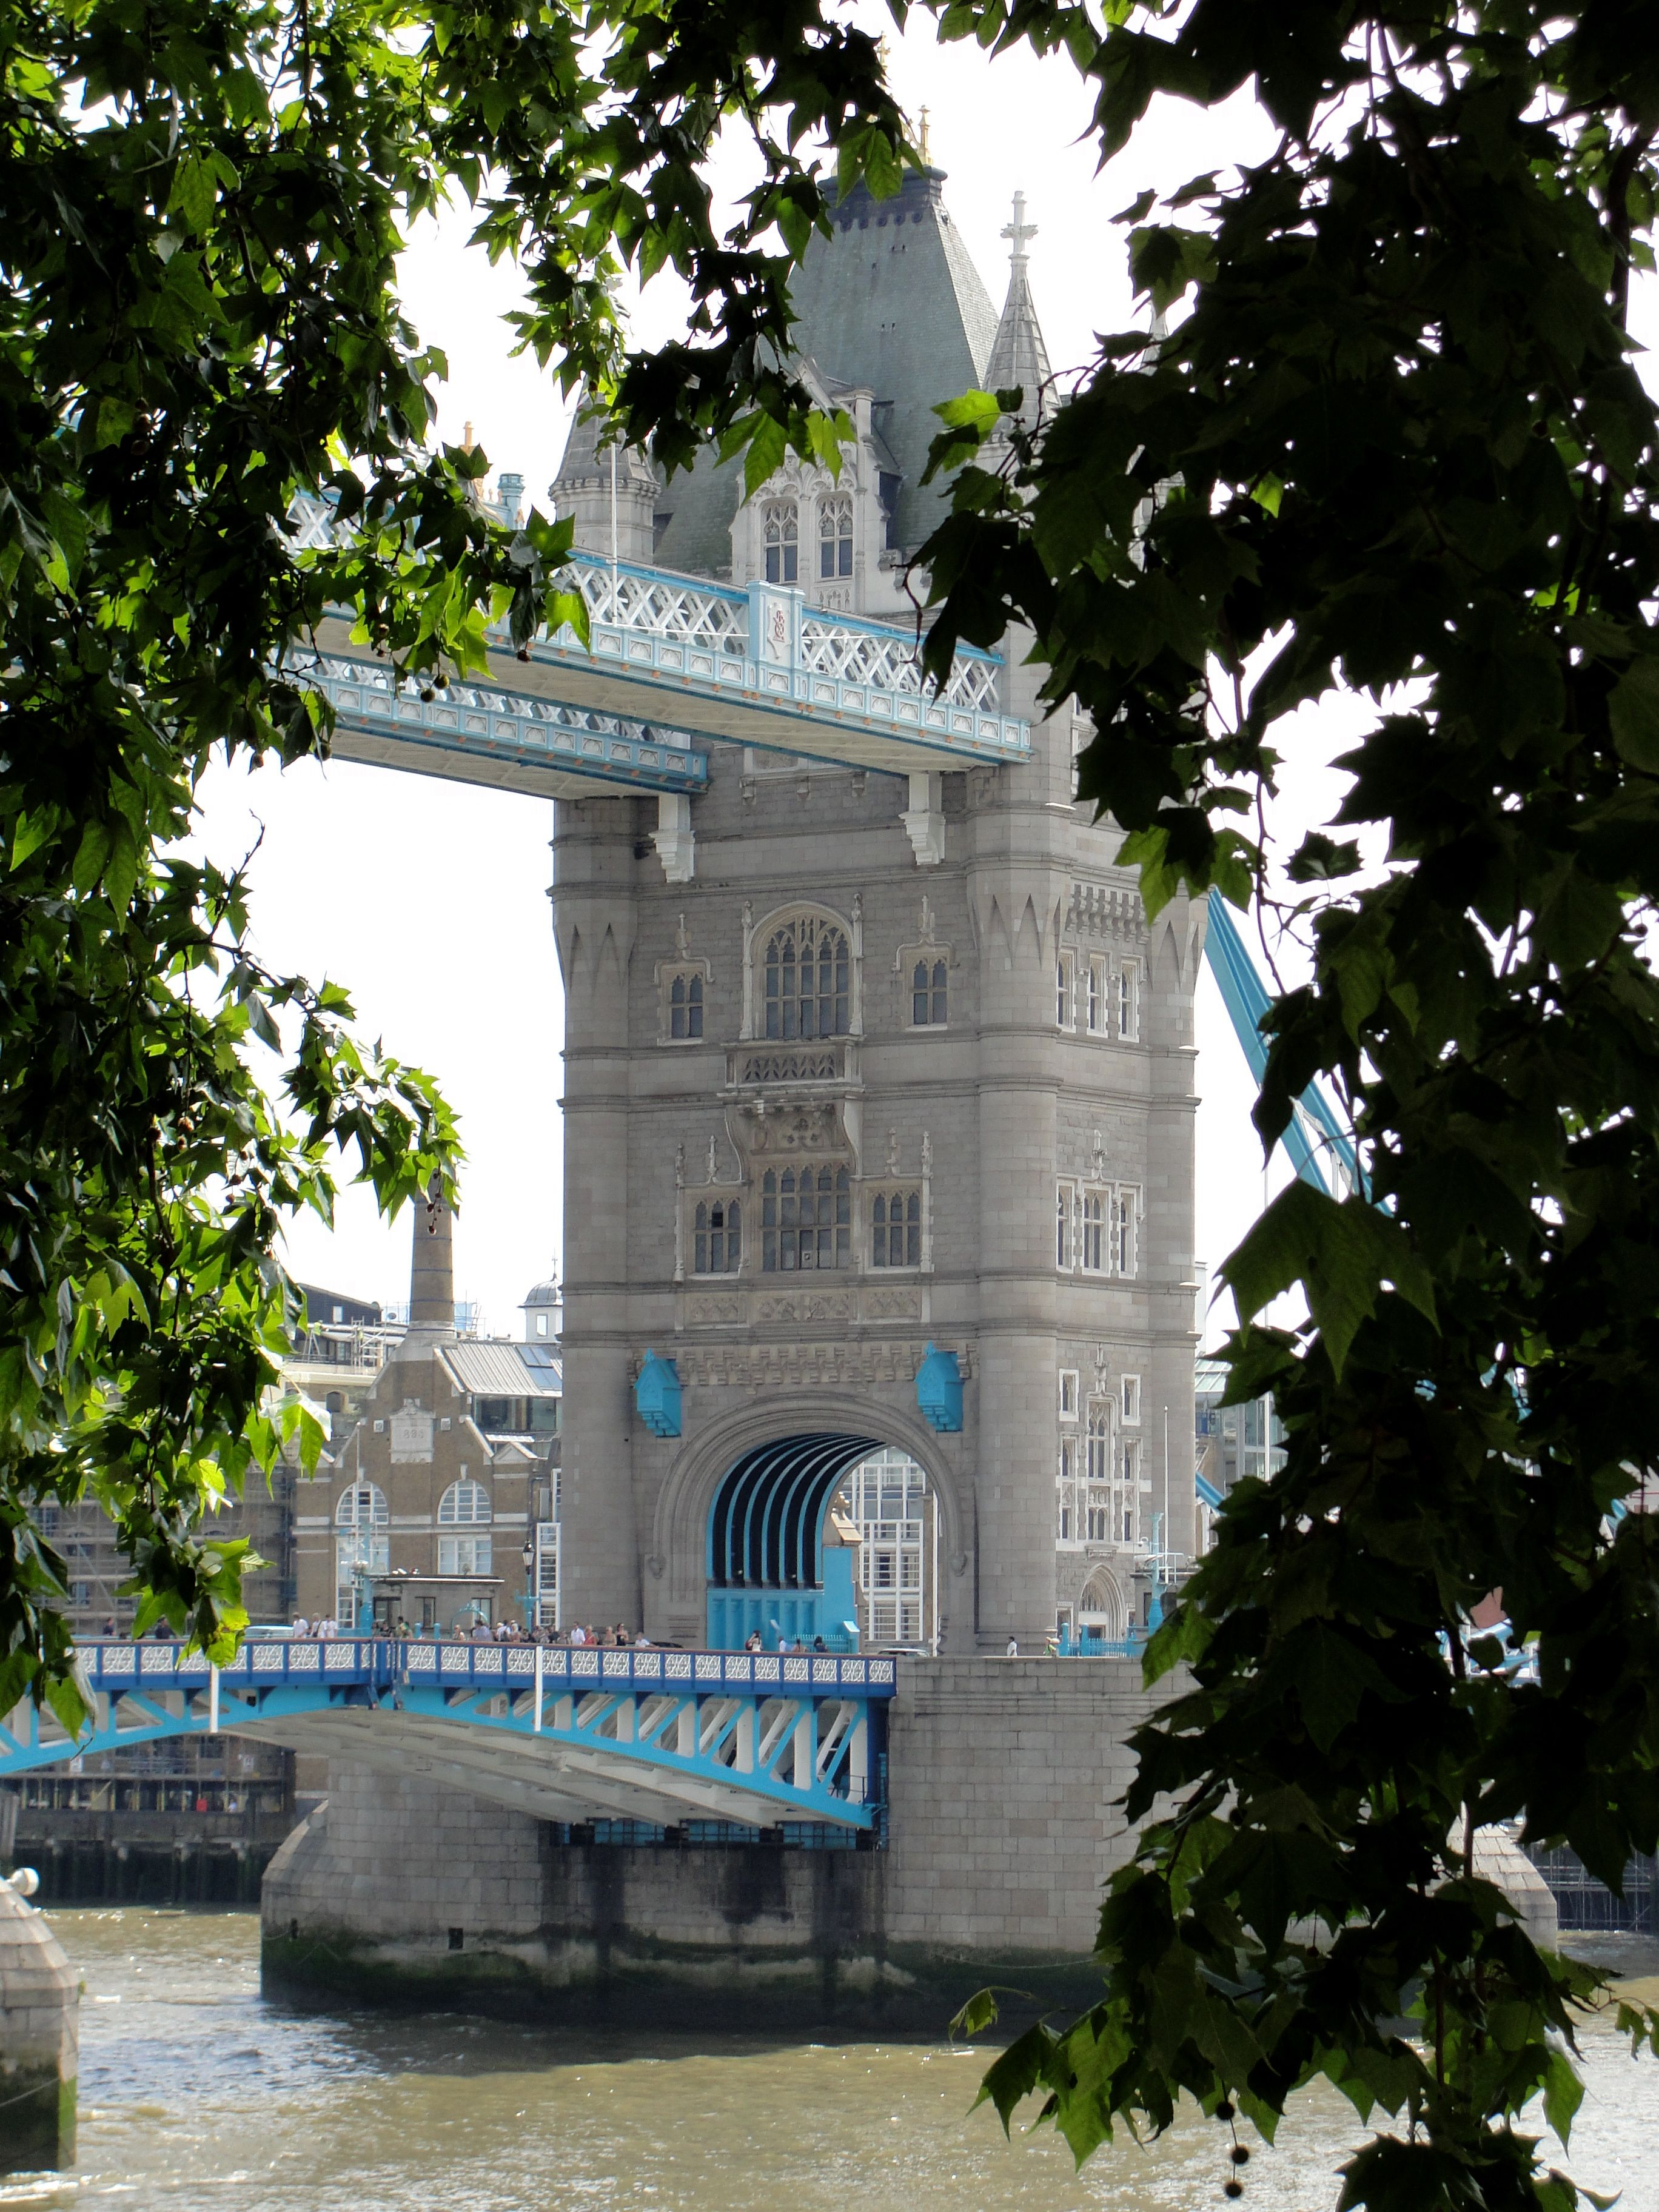 tower bridge in london will be on my list of places to go this